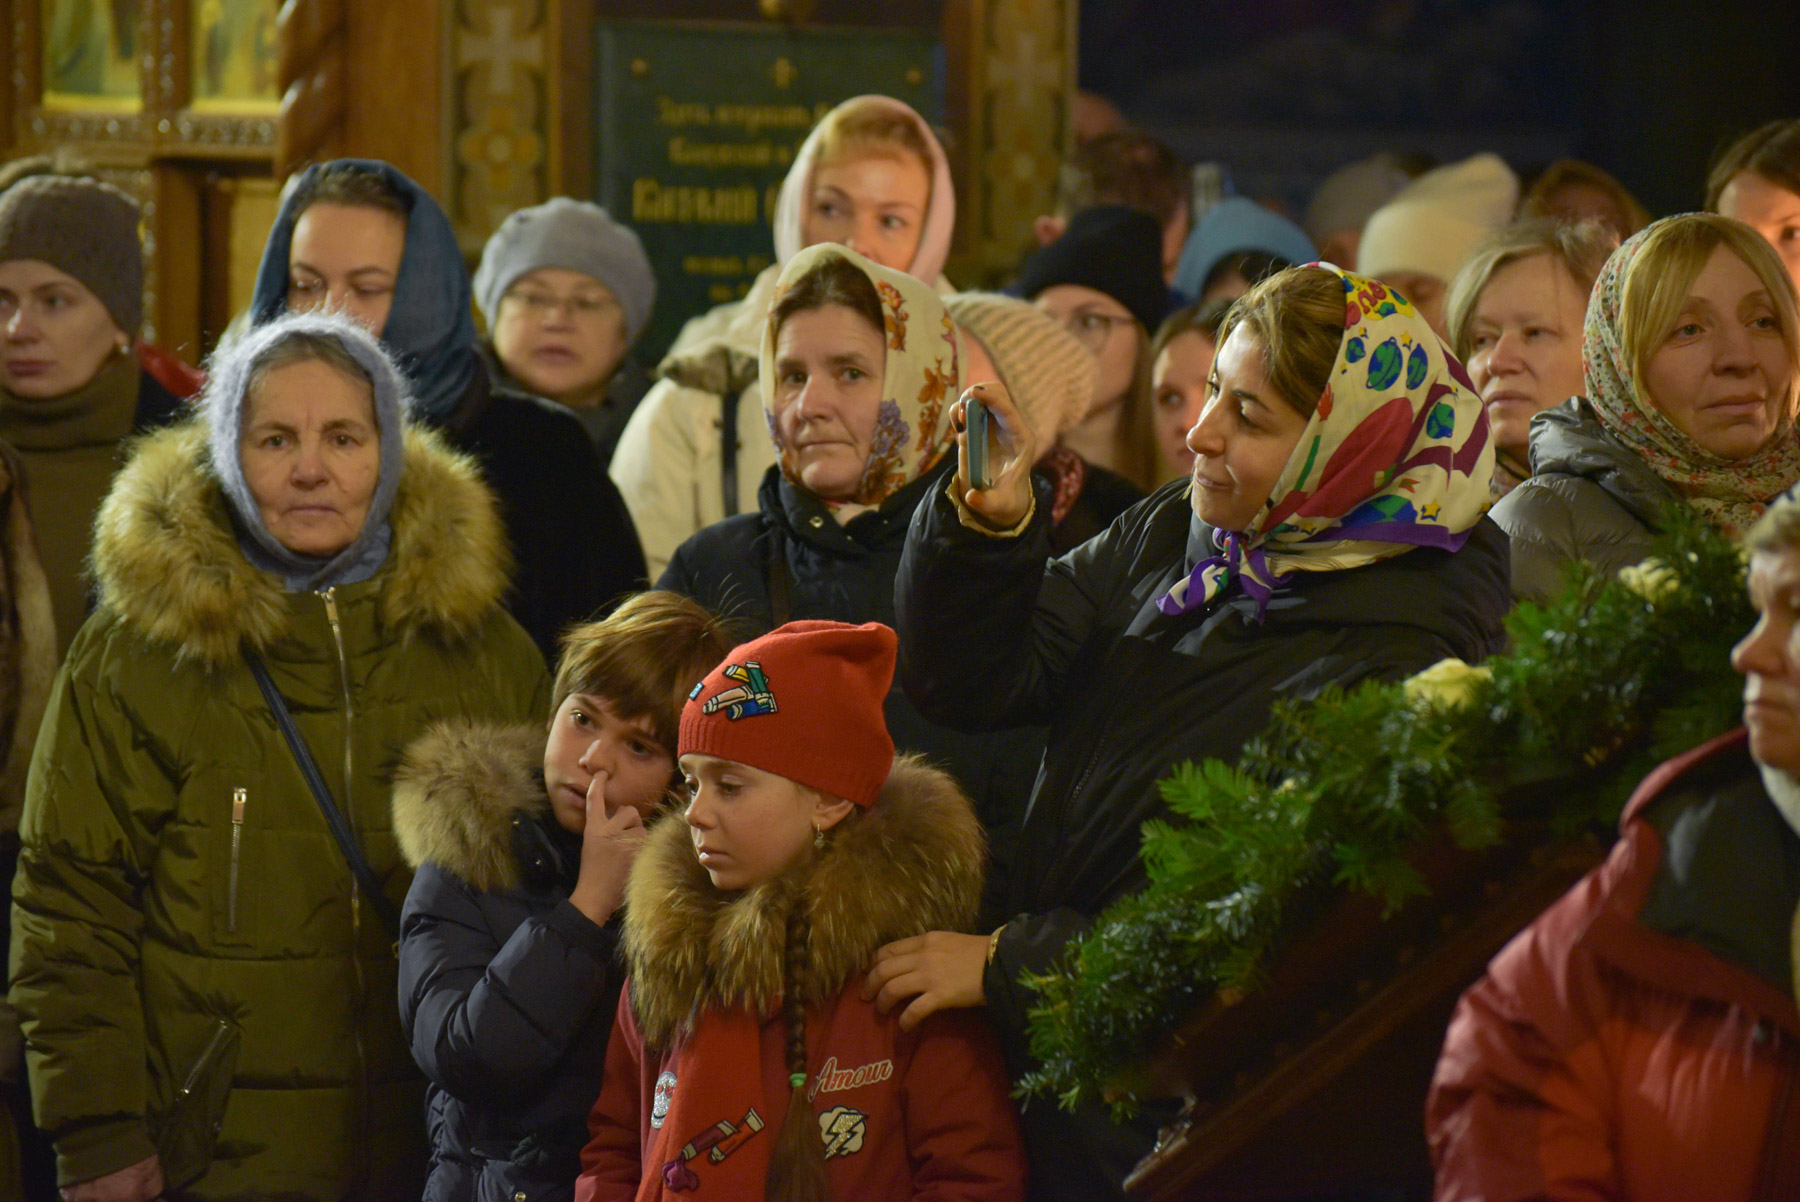 photos of orthodox christmas 0016 1